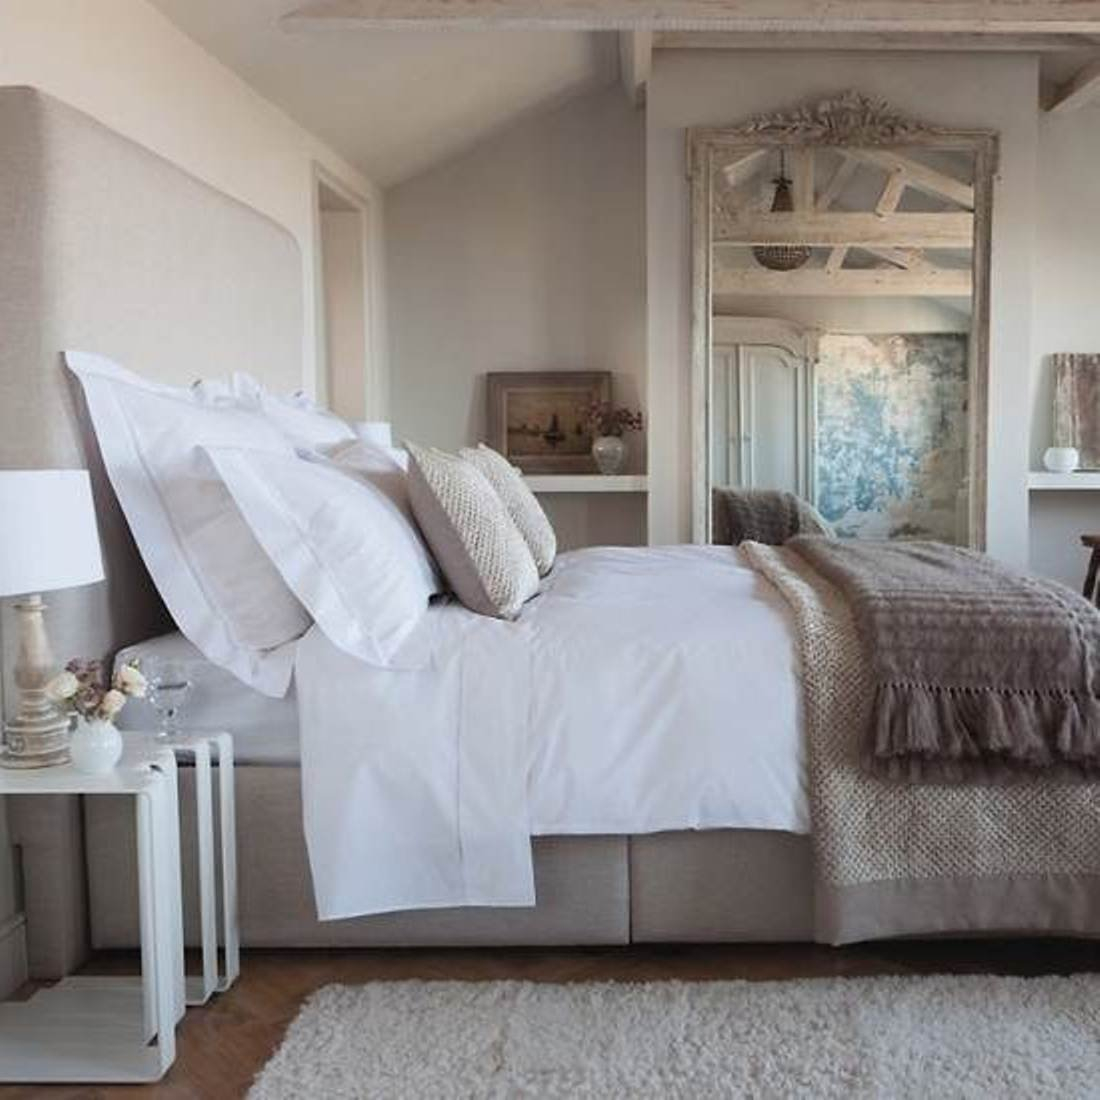 10 Amazing Master Bedroom Decorating Ideas On A Budget how to decorate a master bedroom on a budget home design ideas 2020